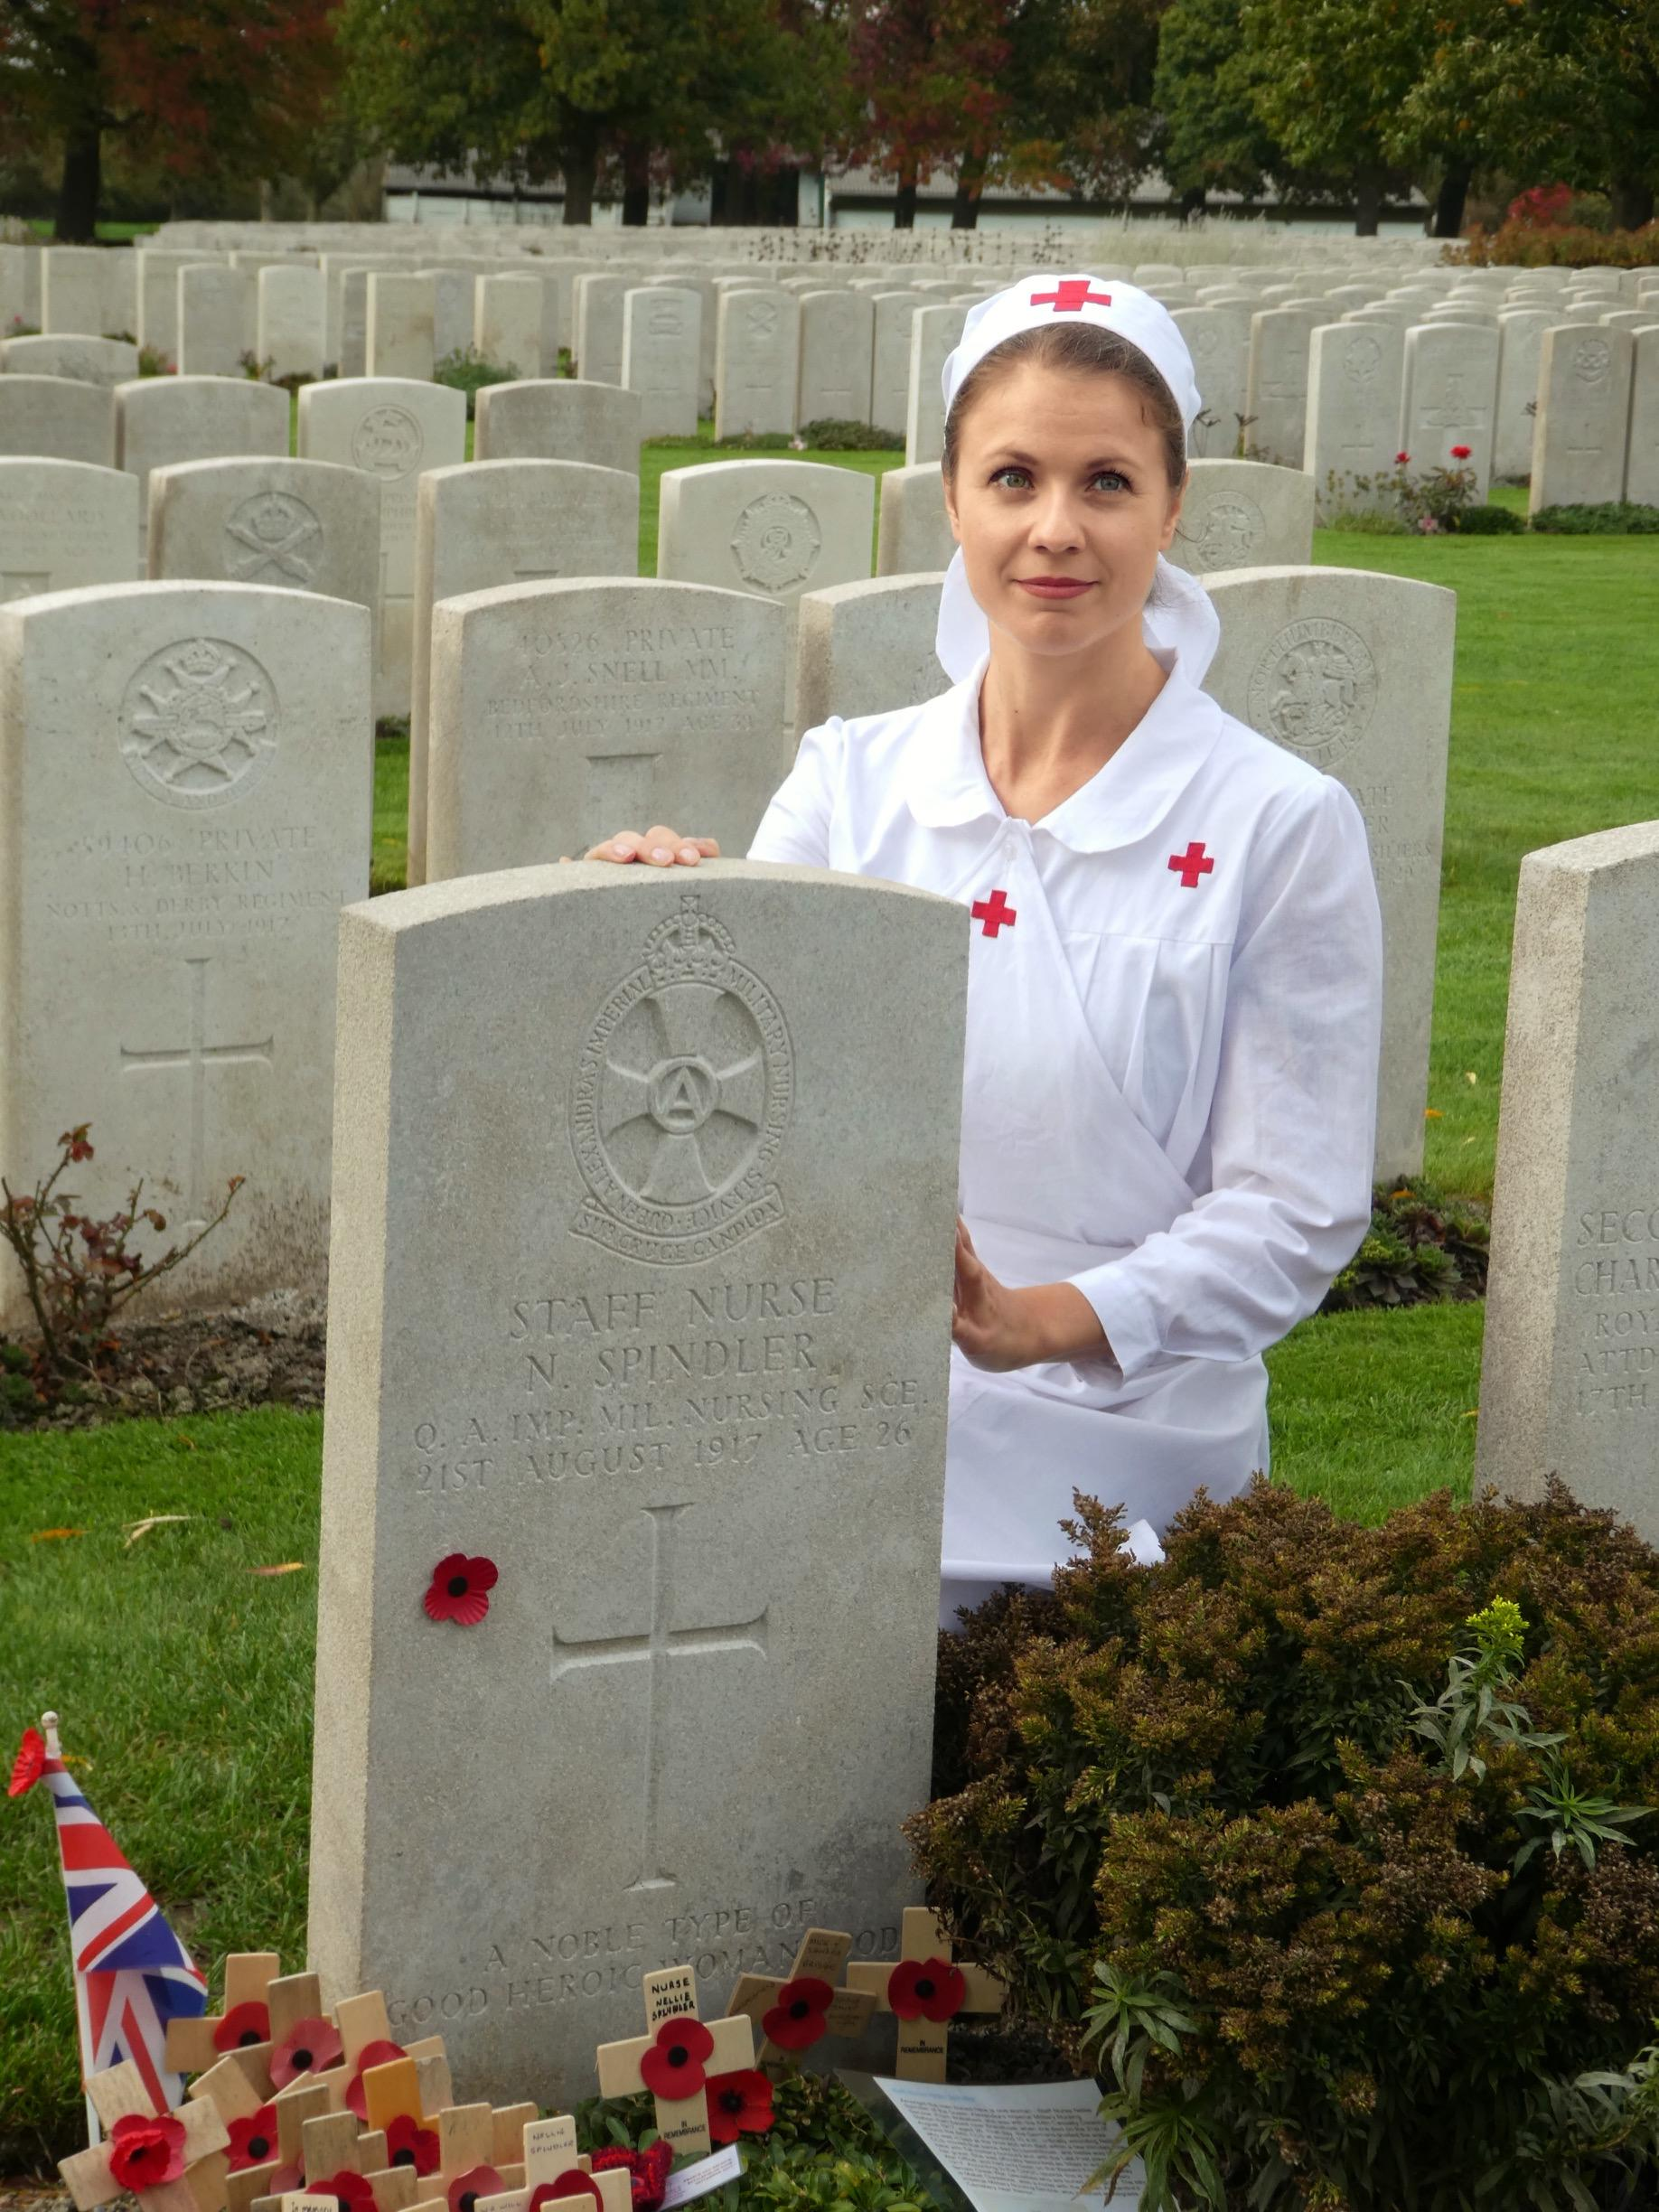 Simone Riksman, soprano in  The Healers,(Les Anges Blanc)   by the grave of Staff Nurse Spindler in France October 2017 during the concert season there.